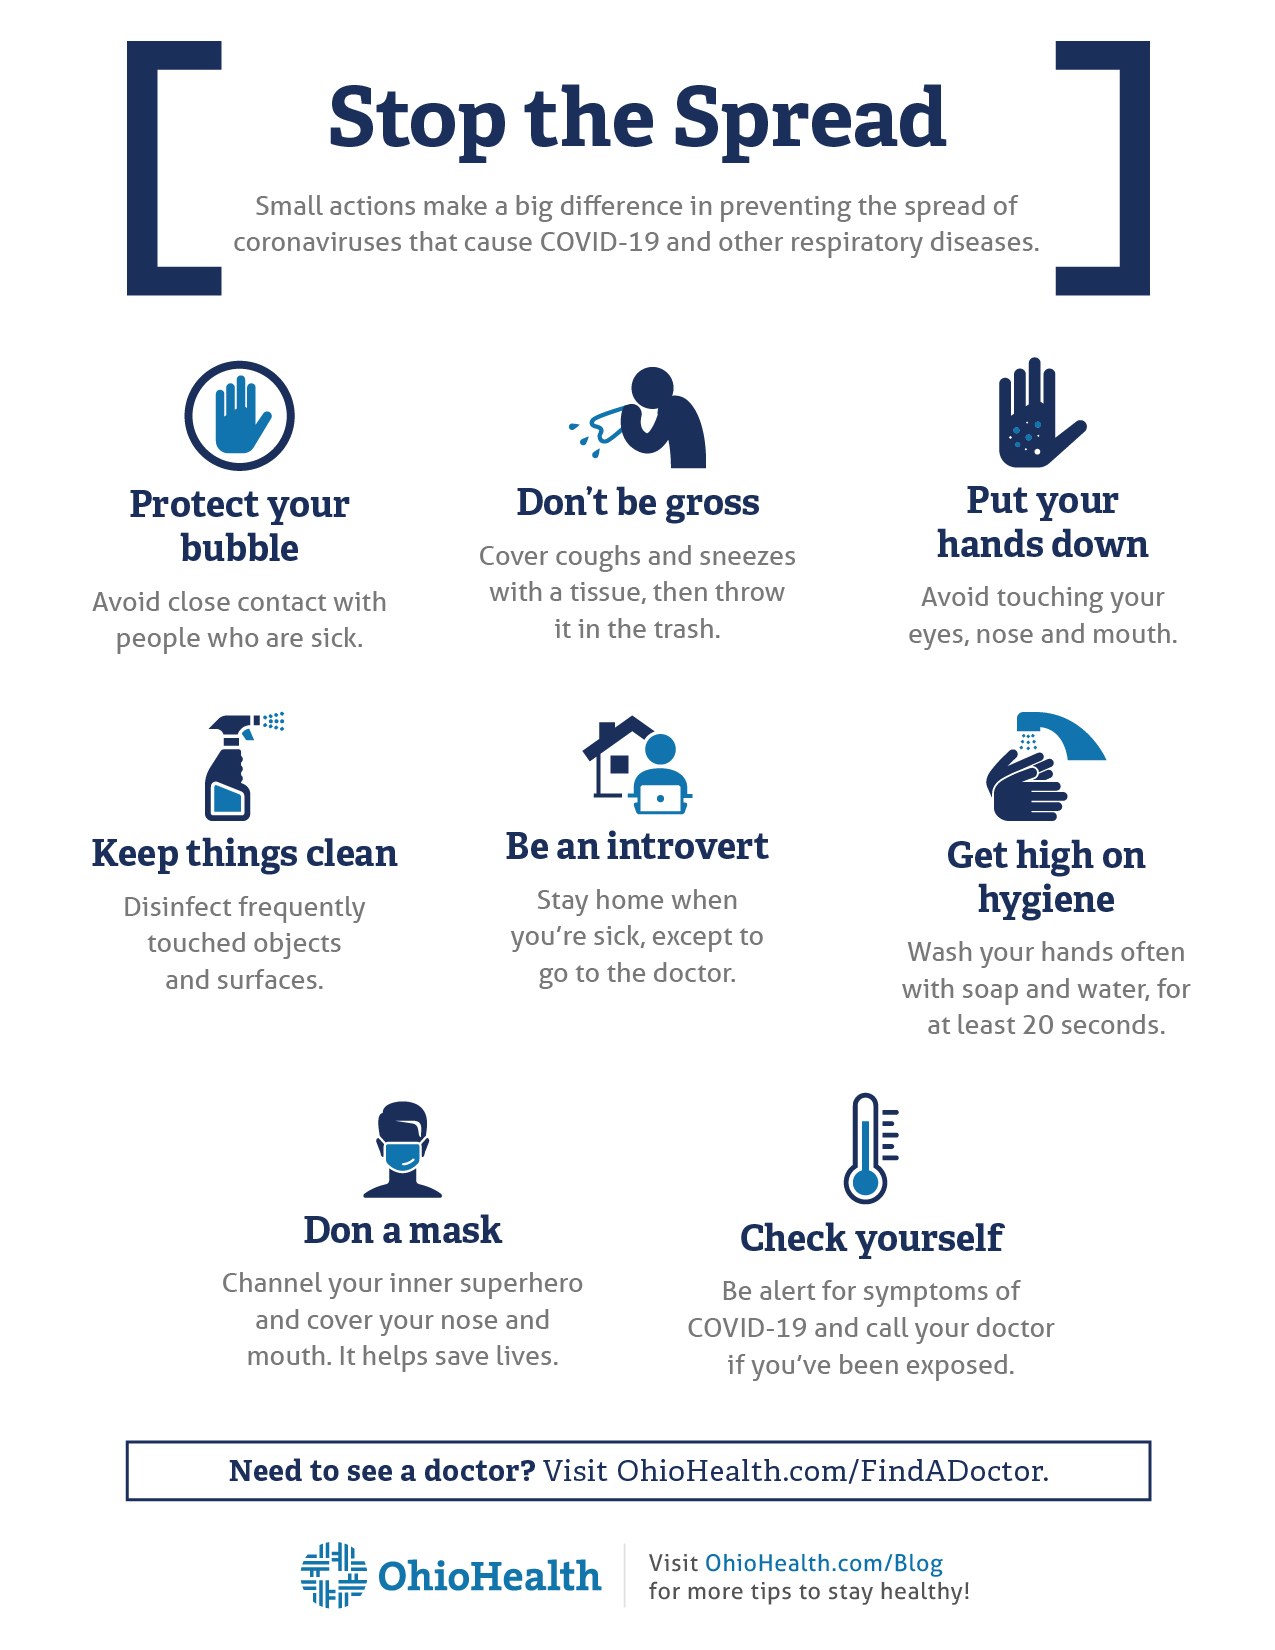 Infographic with tips on stopping the spread of COVID-19